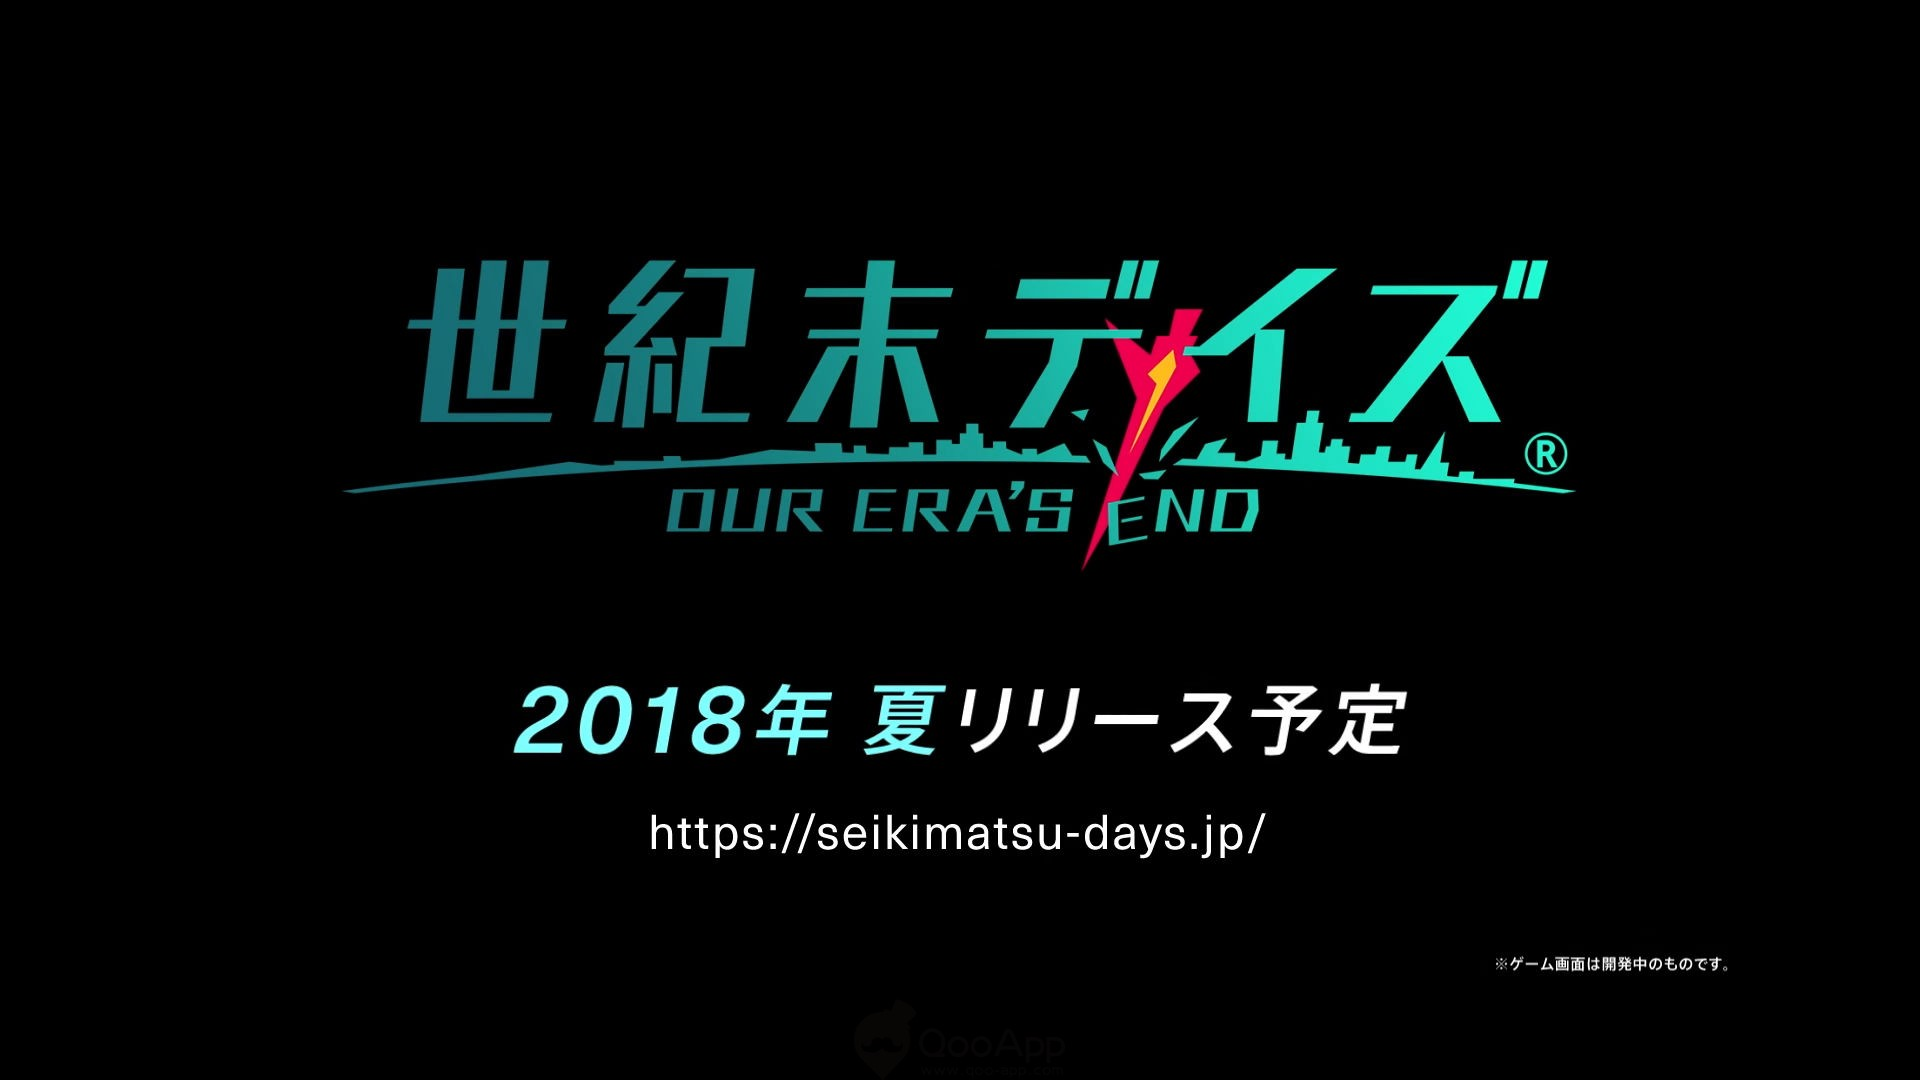 Qoo News] DeNa Announces Seikimatsu Days: Our Era's End for